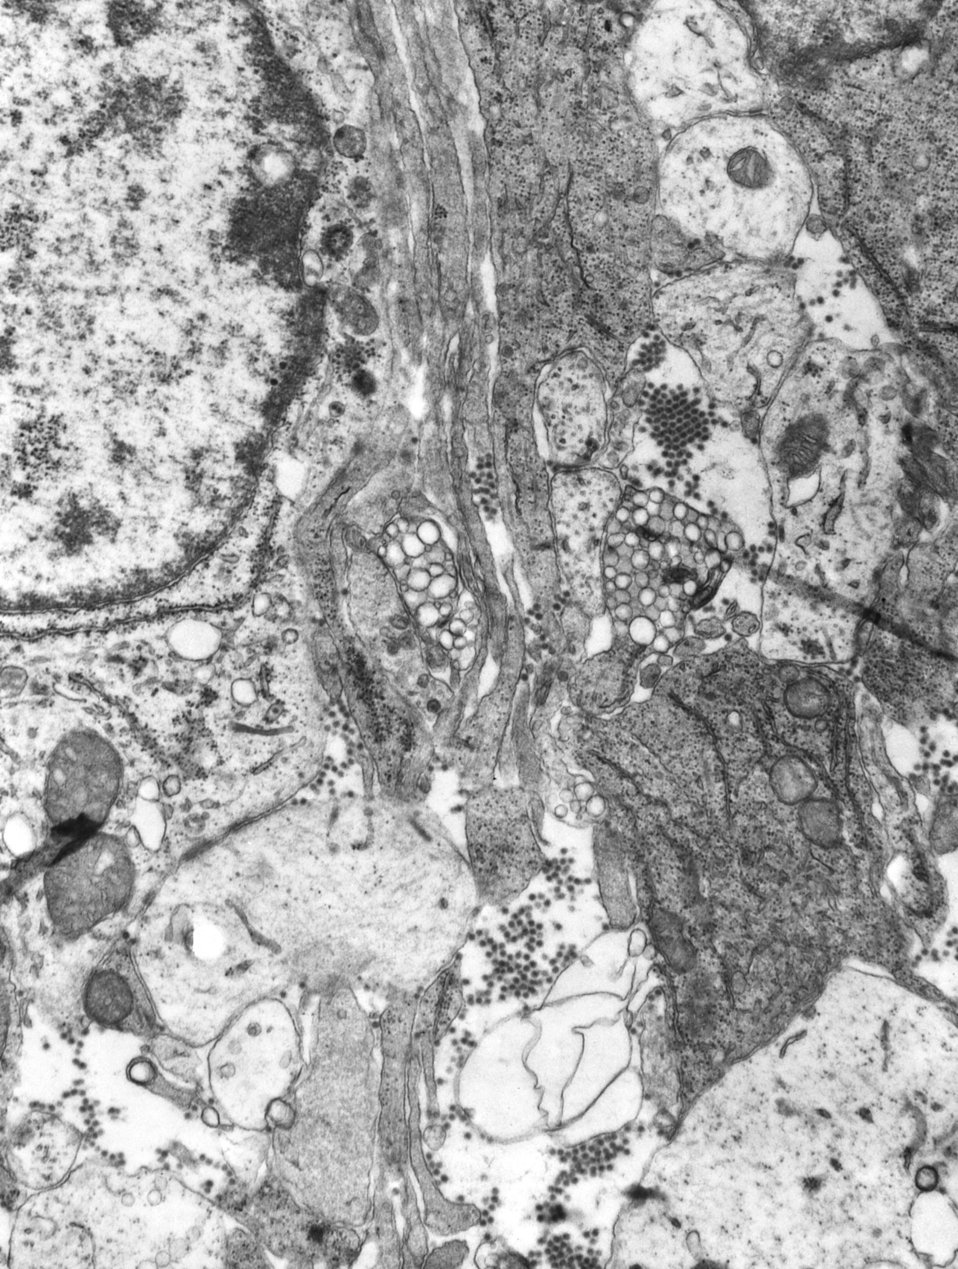 This 1975 transmission electron micrograph (TEM) revealed the presence of a number of Eastern Equine Encephalitis (EEE) virus virions in thi